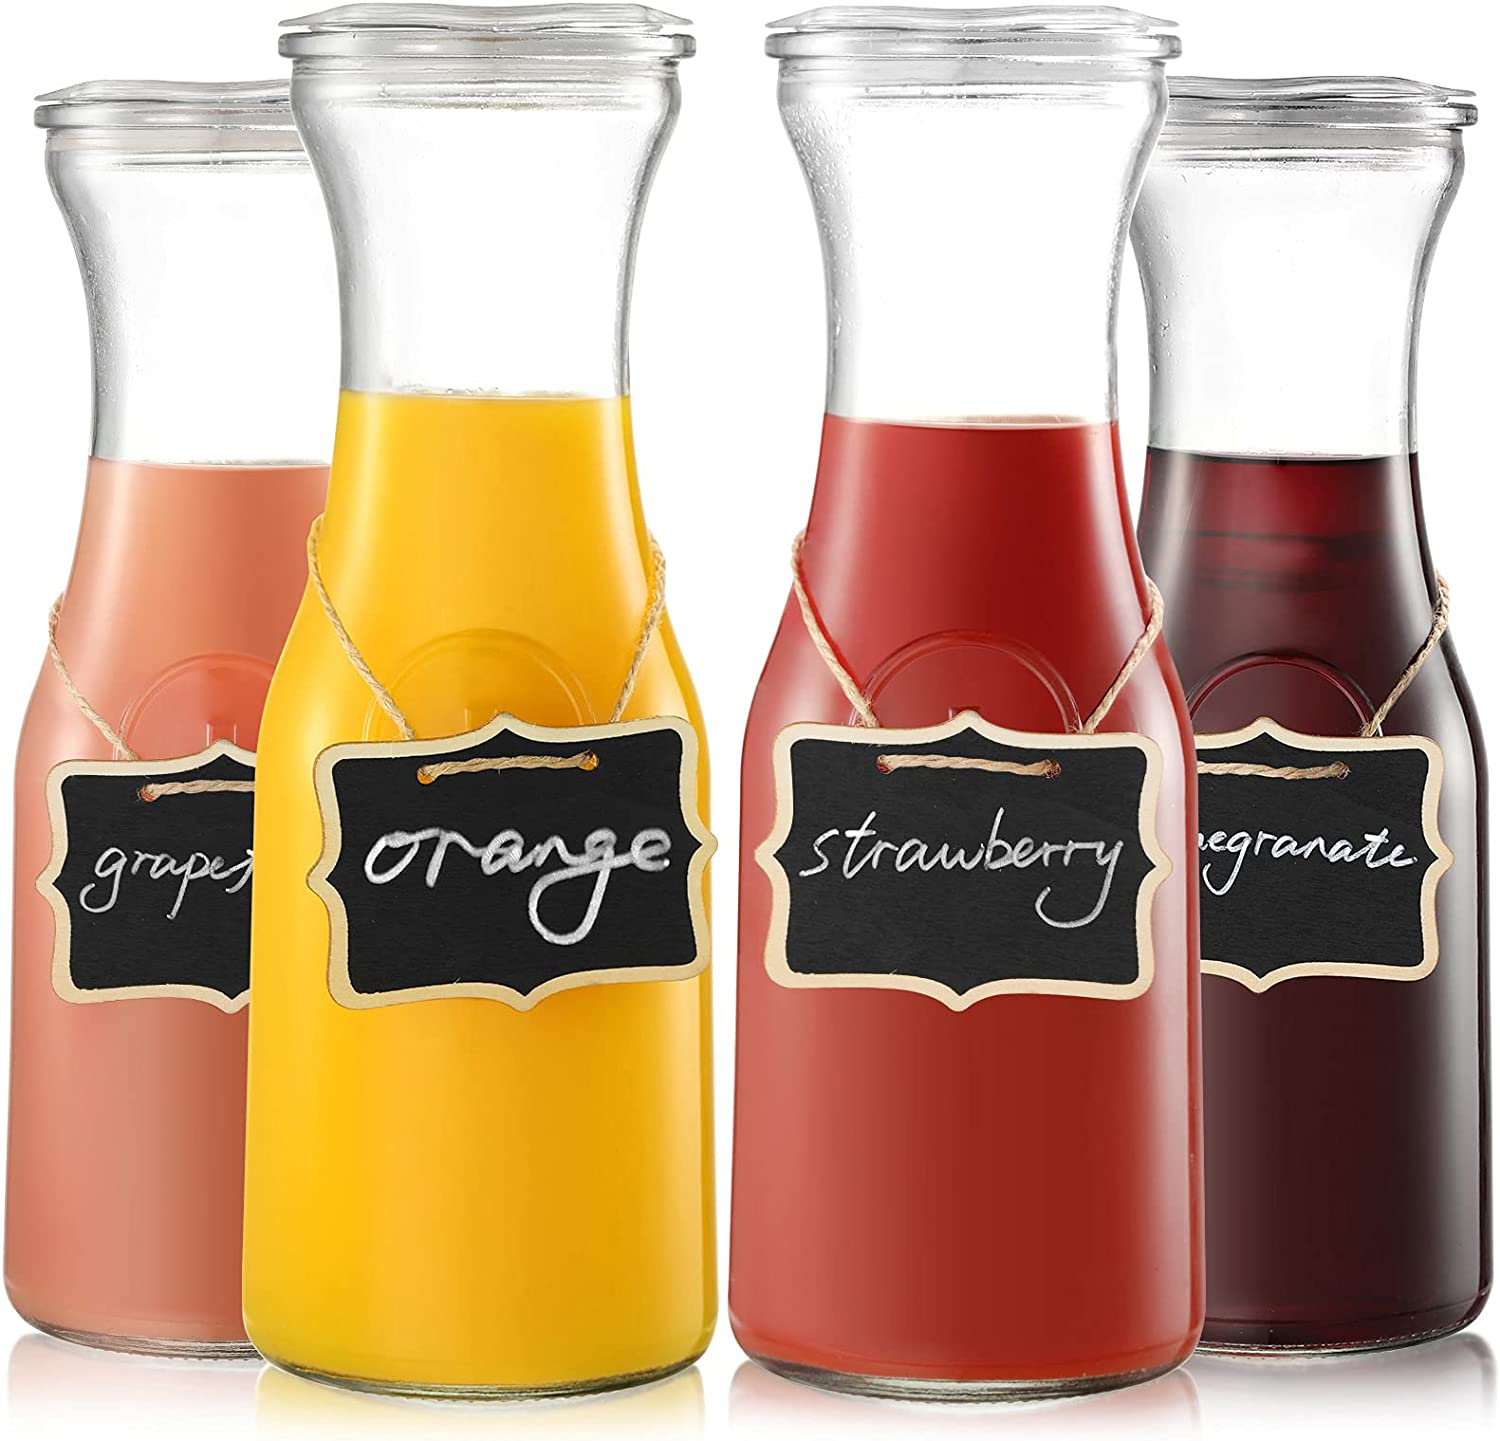 NETANY 4 Pack Glass Carafe with Lids, 1 Liter Beverage Pitcher Carafe for Mimosa Bar, Brunch, Cold Water, Wine, Iced Tea, Lemonade - 4 Wooden Chalkboard Tags Included